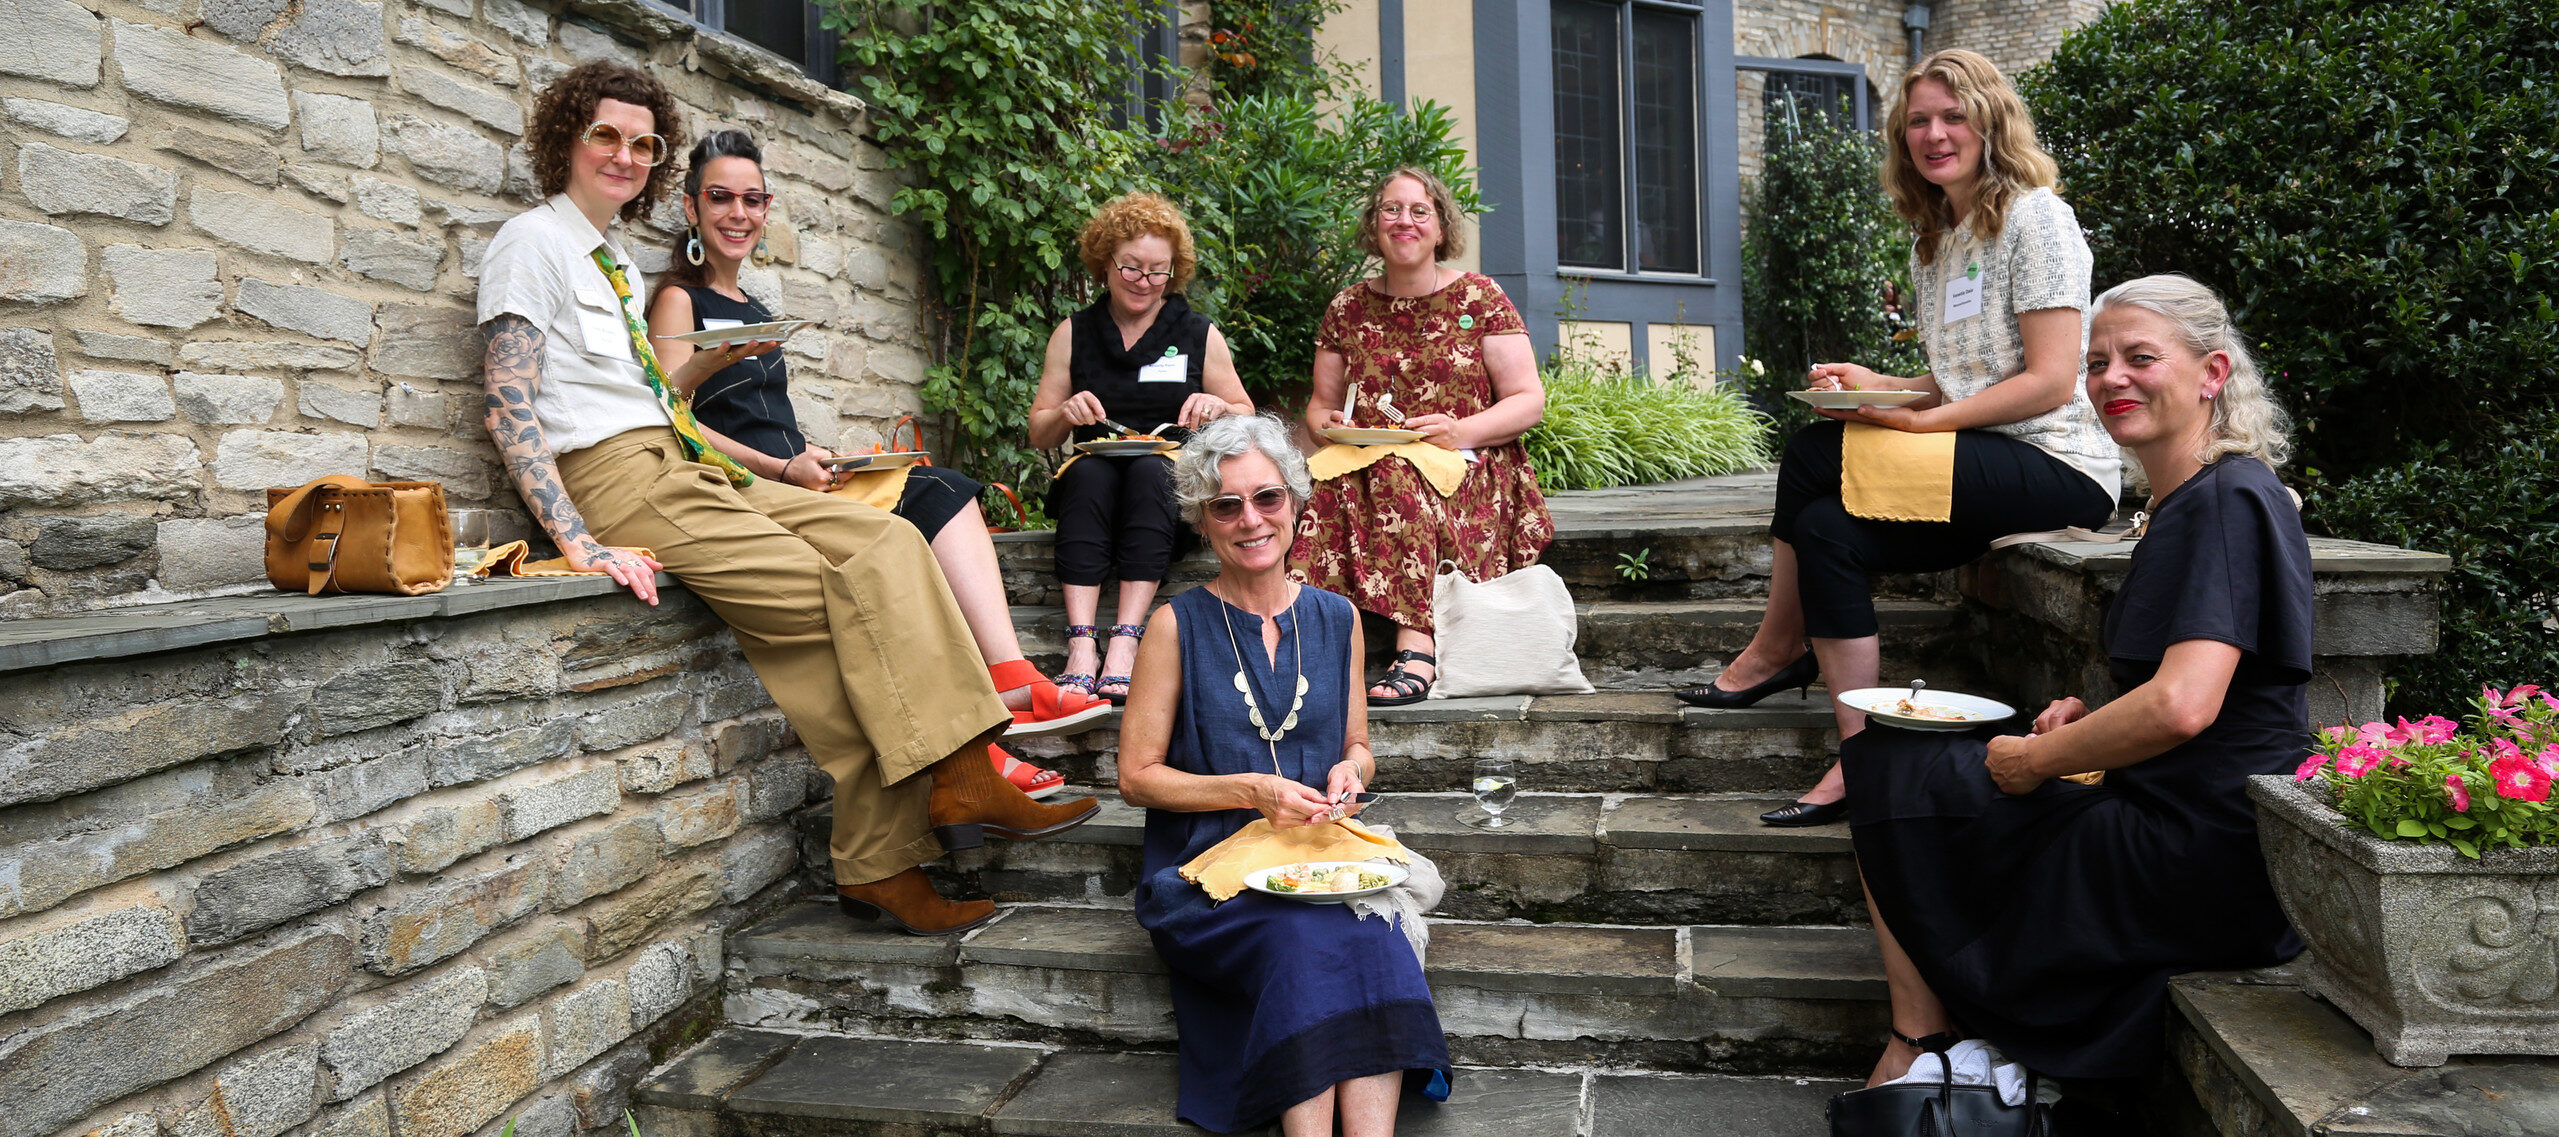 A photograph of seven light skinned women seated on stone steps eating lunch with plates and napkins in their laps. The women are looking at the camera and smiling. There is a Tudor style home in the background.